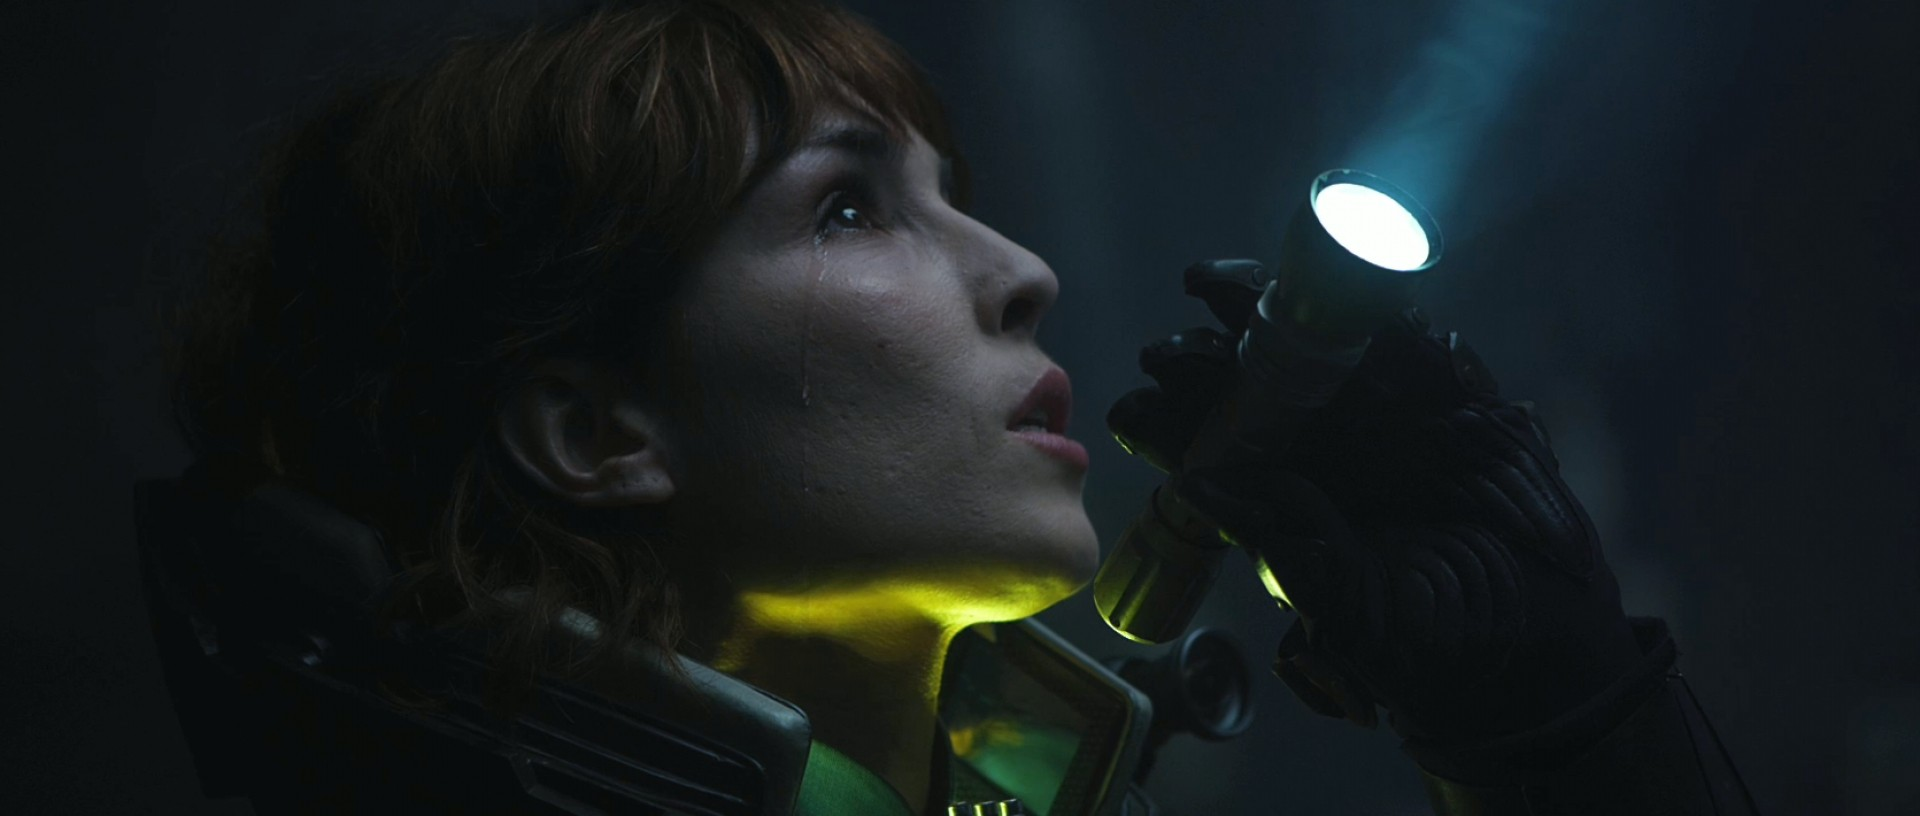 noomi rapace body prometheus wwwimgkidcom the image